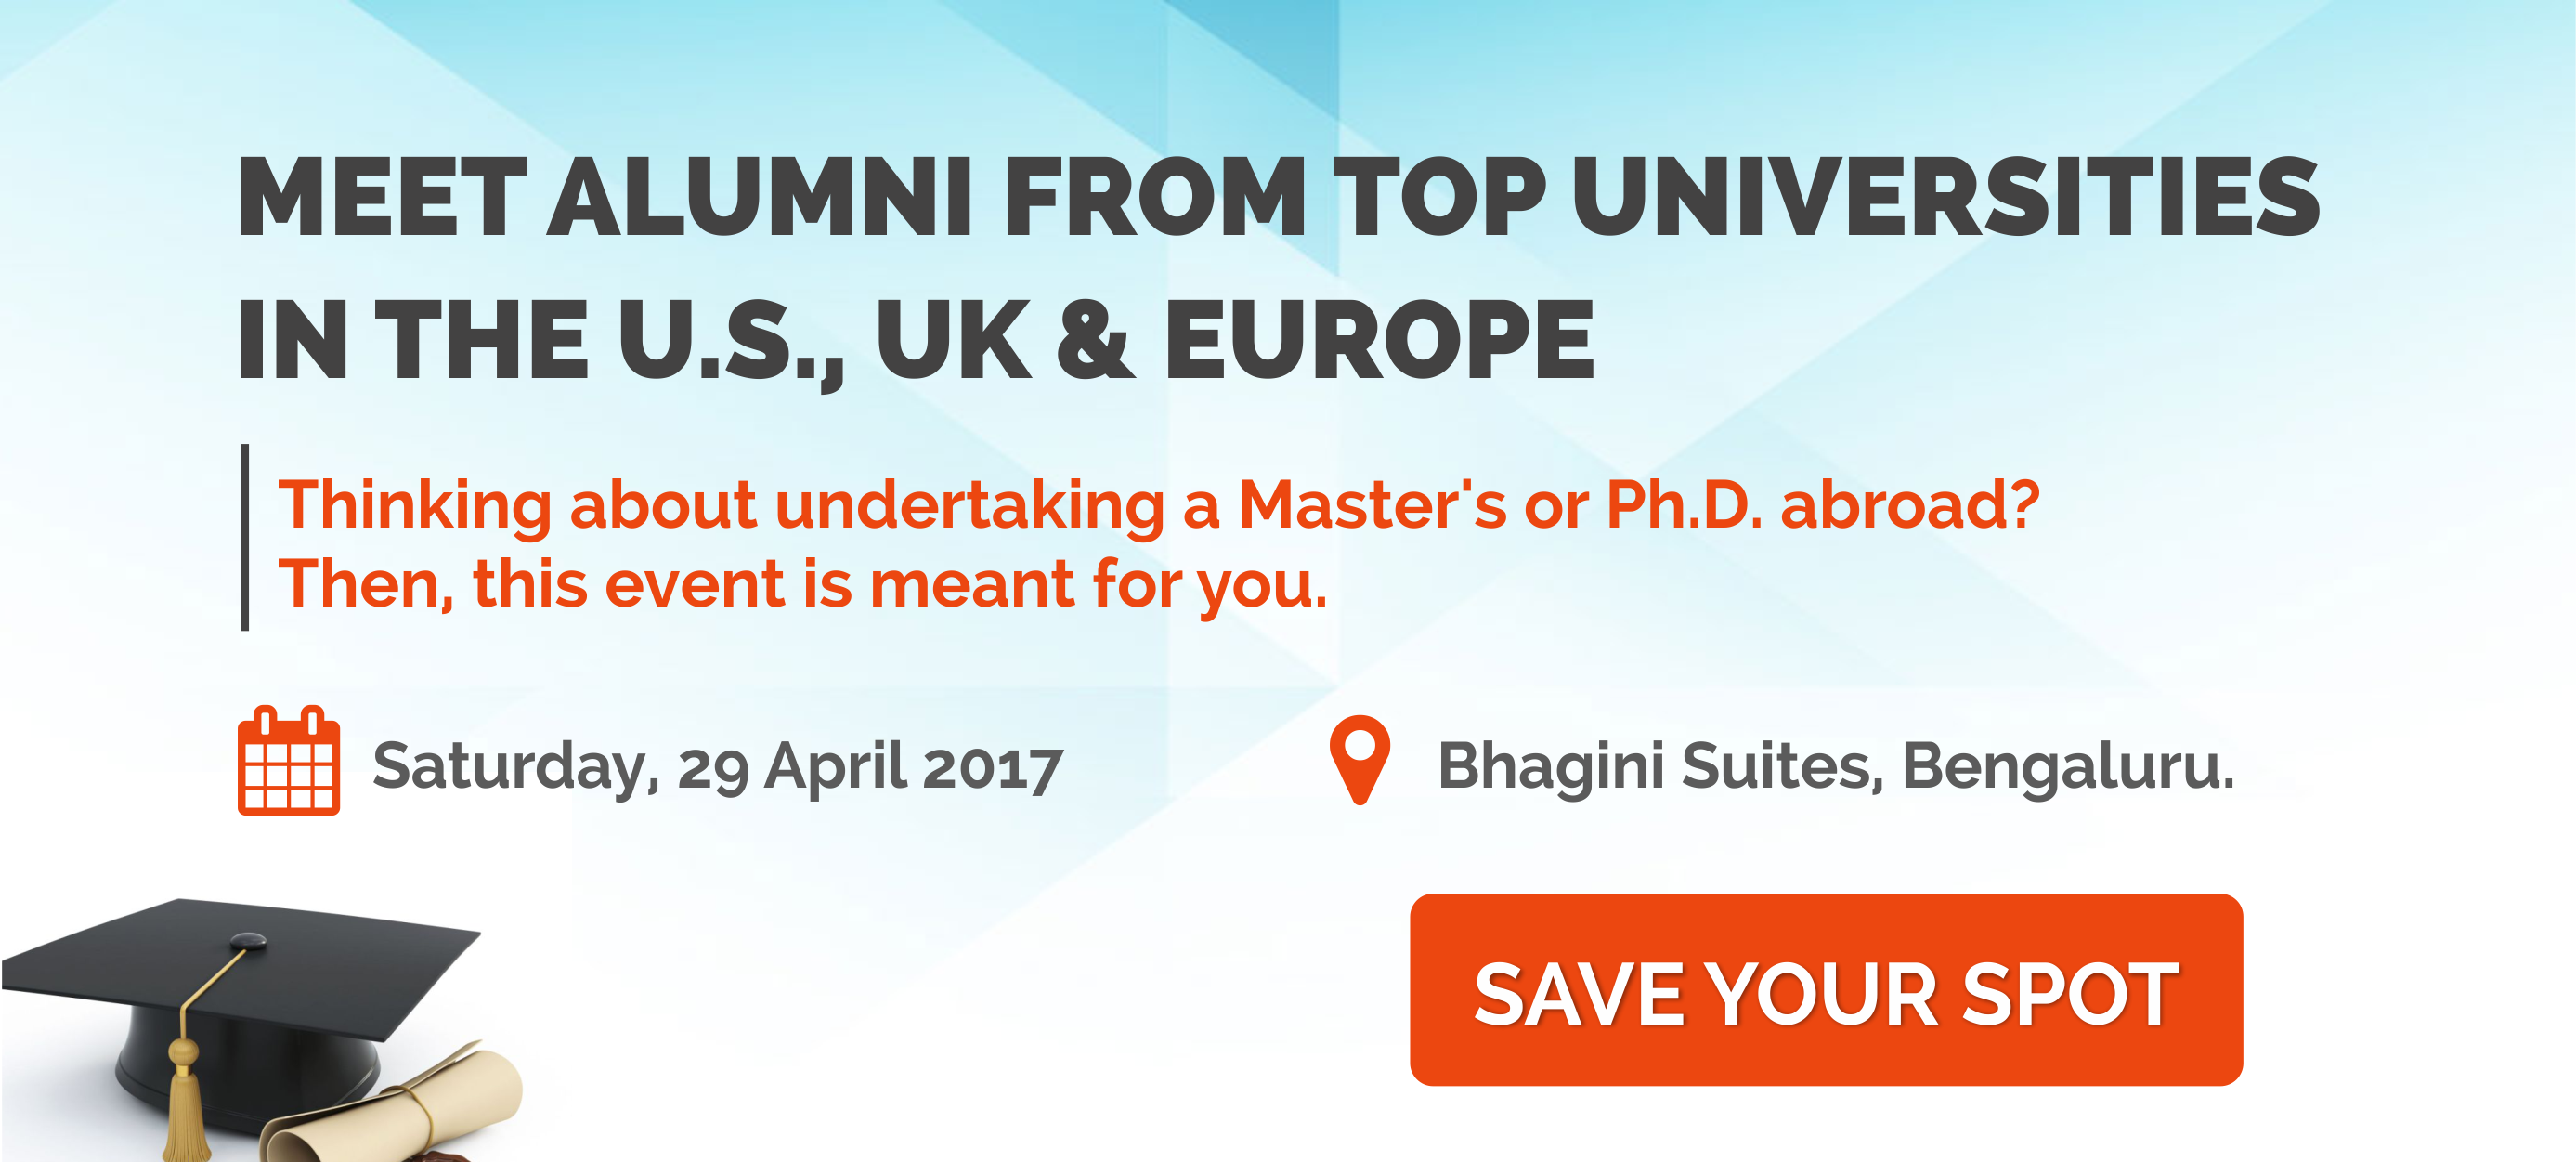 Meet Alumni from Top Universities in the U.S., UK & Europe